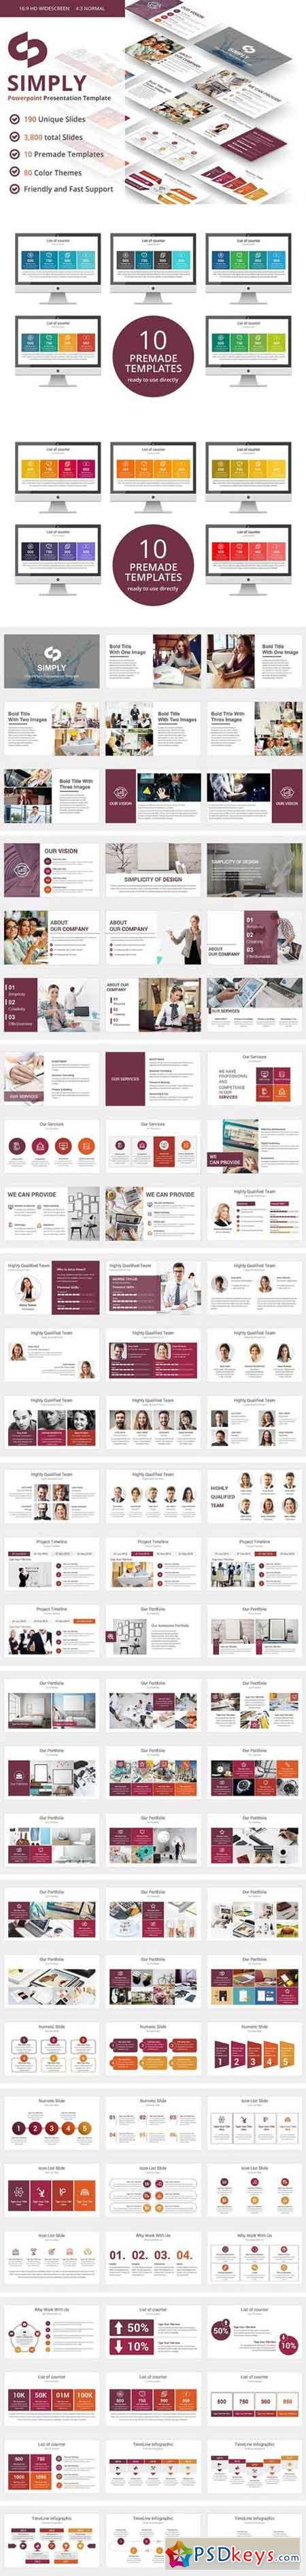 Simply PowerPoint Template 2278879